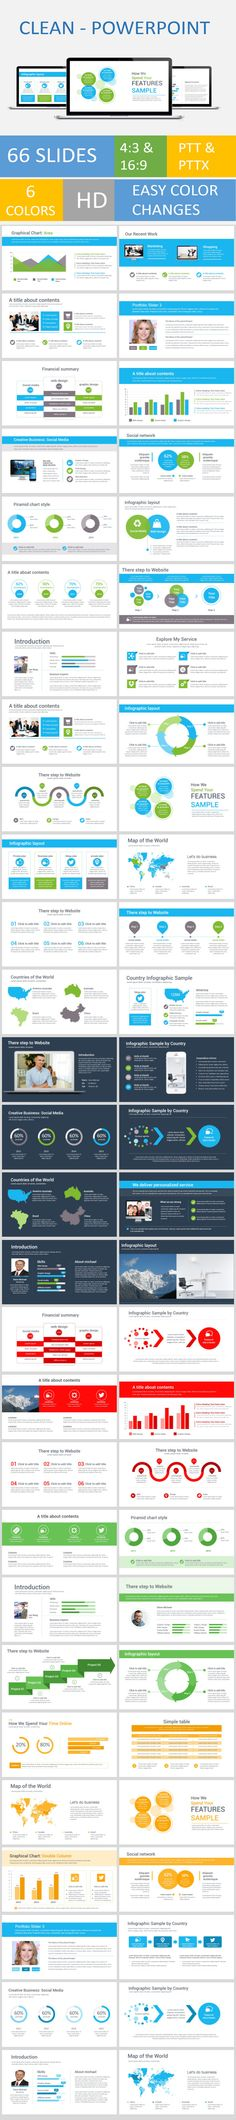 Clean-Powerpoint template (Powerpoint Templates) Image 20Preview 20